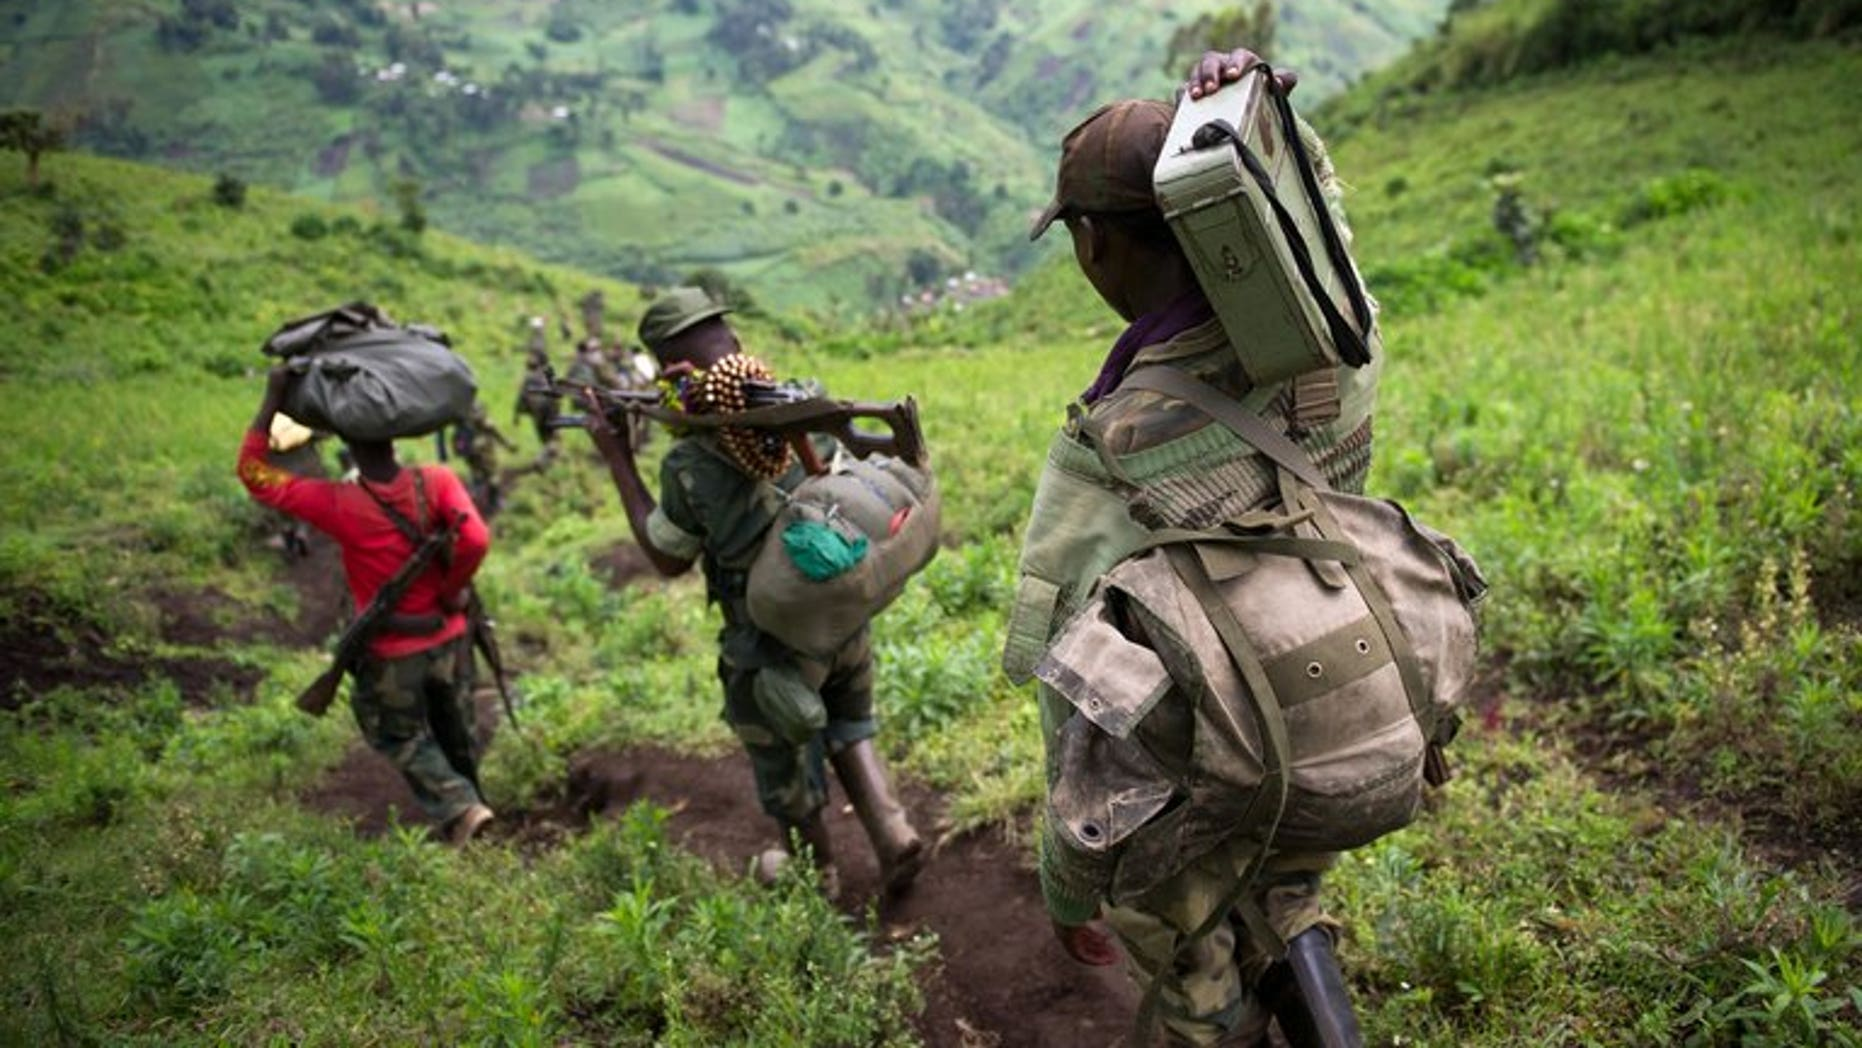 M23 rebels leave the village of Karuba, eastern DR Congo, on November 30, 2012. The rebeles say they are waiting for a government delegation to arrive to resume peace talks, in line with an ultimatum set by regional leaders.